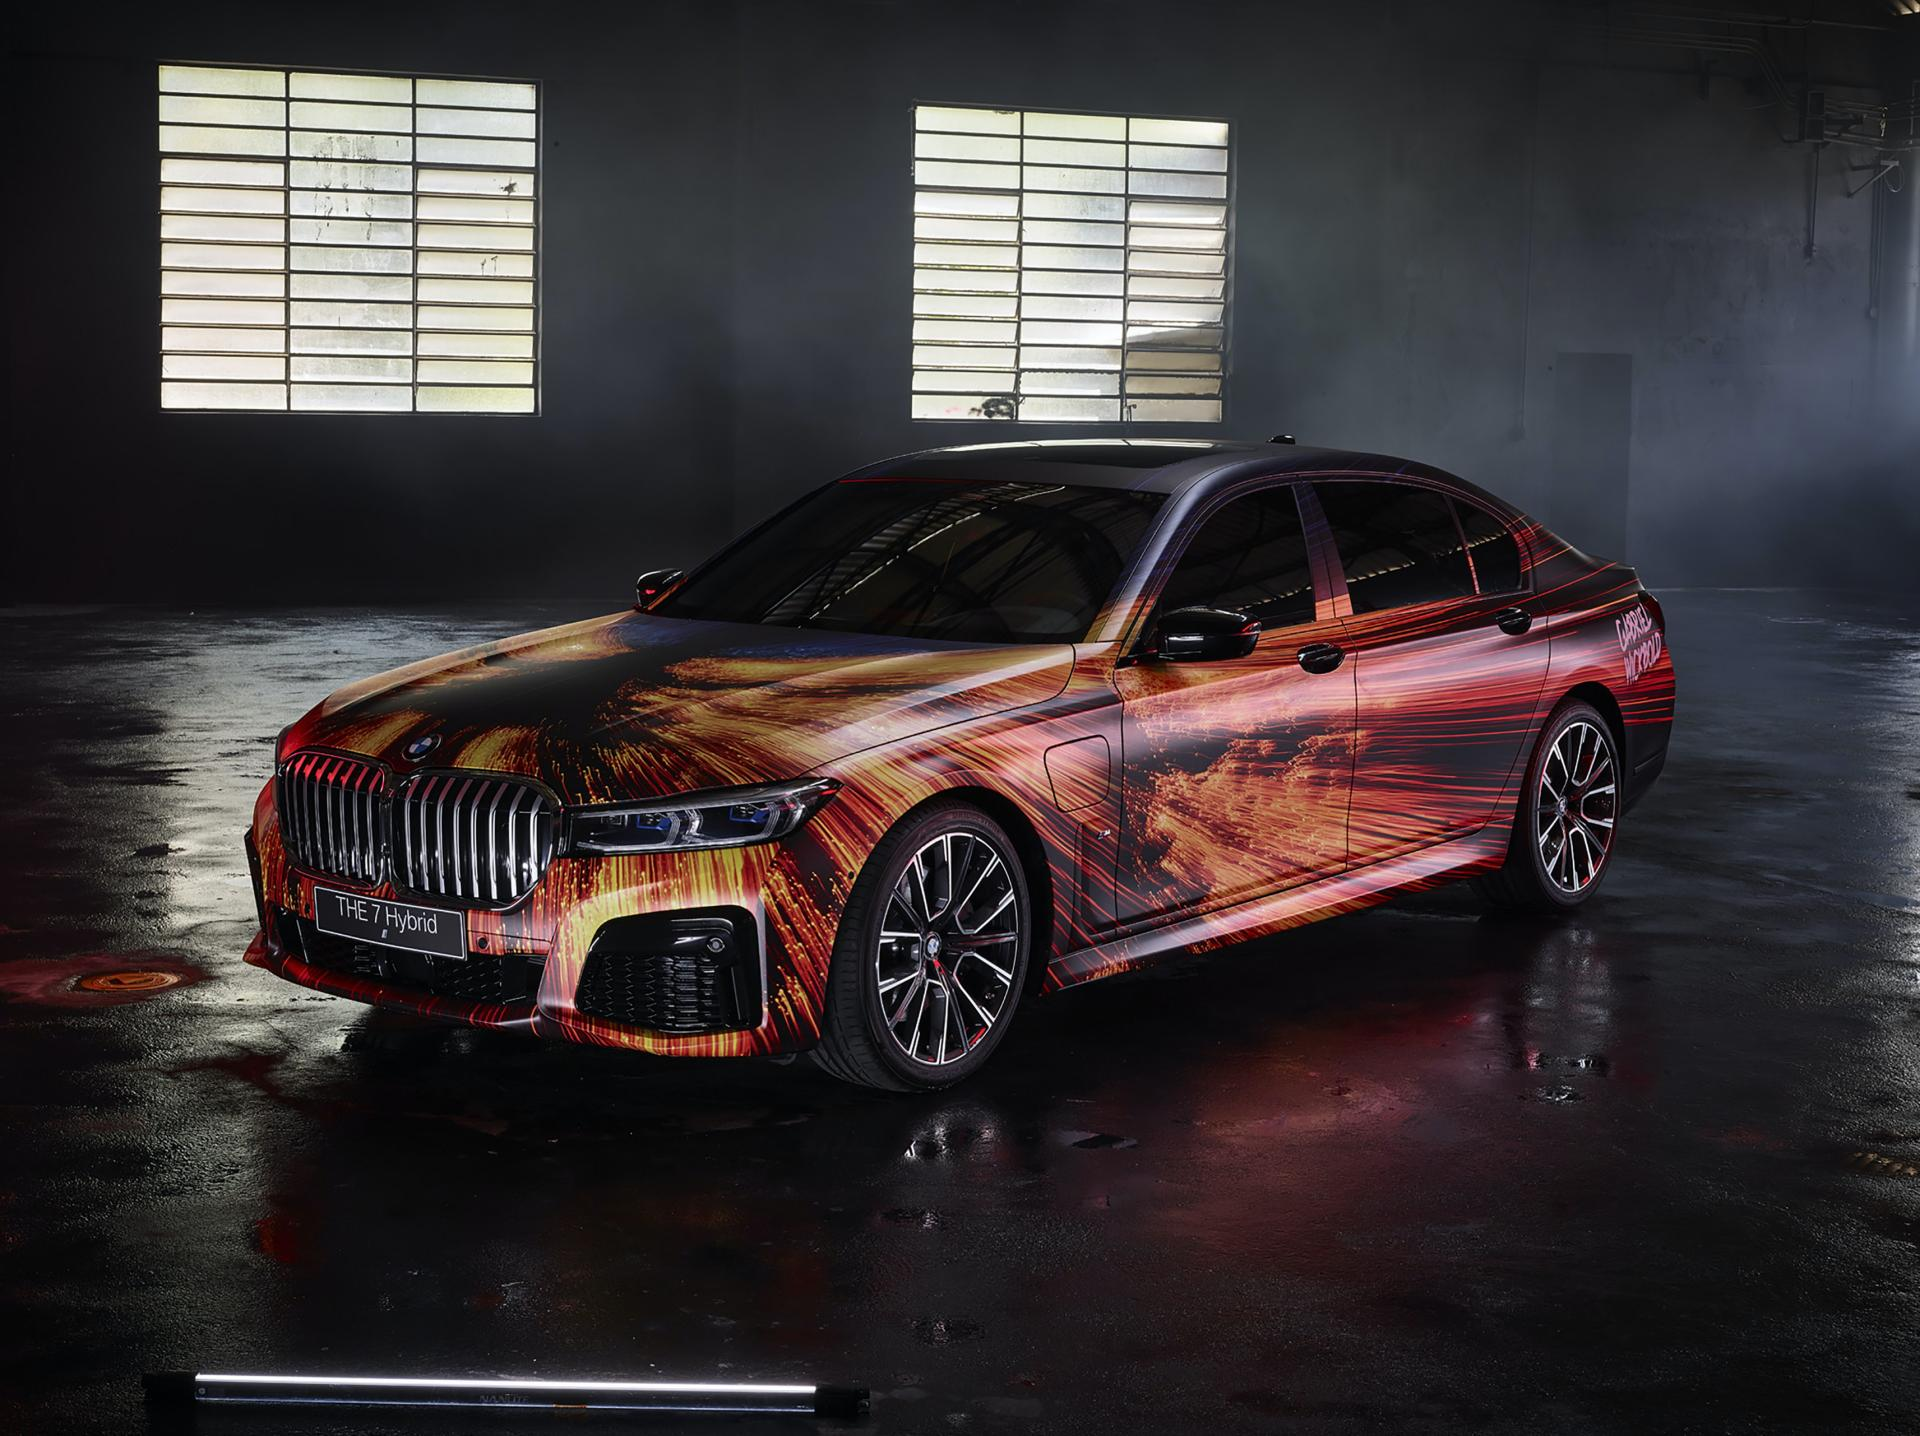 BMW-7-Series-745Le-M-Sport-Gabriel-Wickbold-Car-Art-6